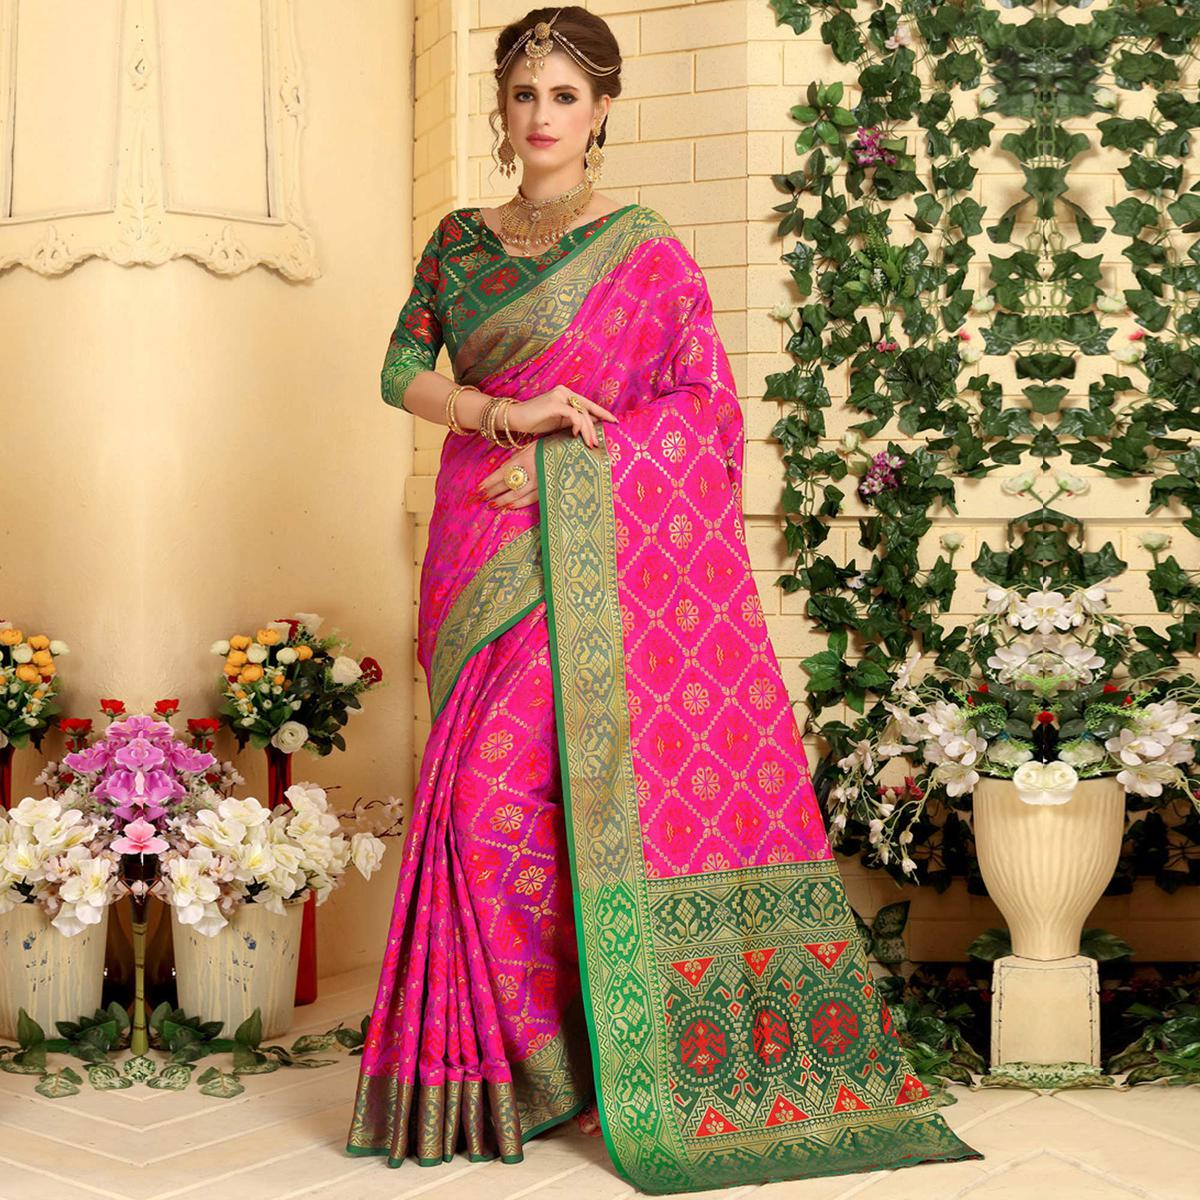 Stunning Rani Pink Colored Festive Wear Woven Jacquard Silk Saree